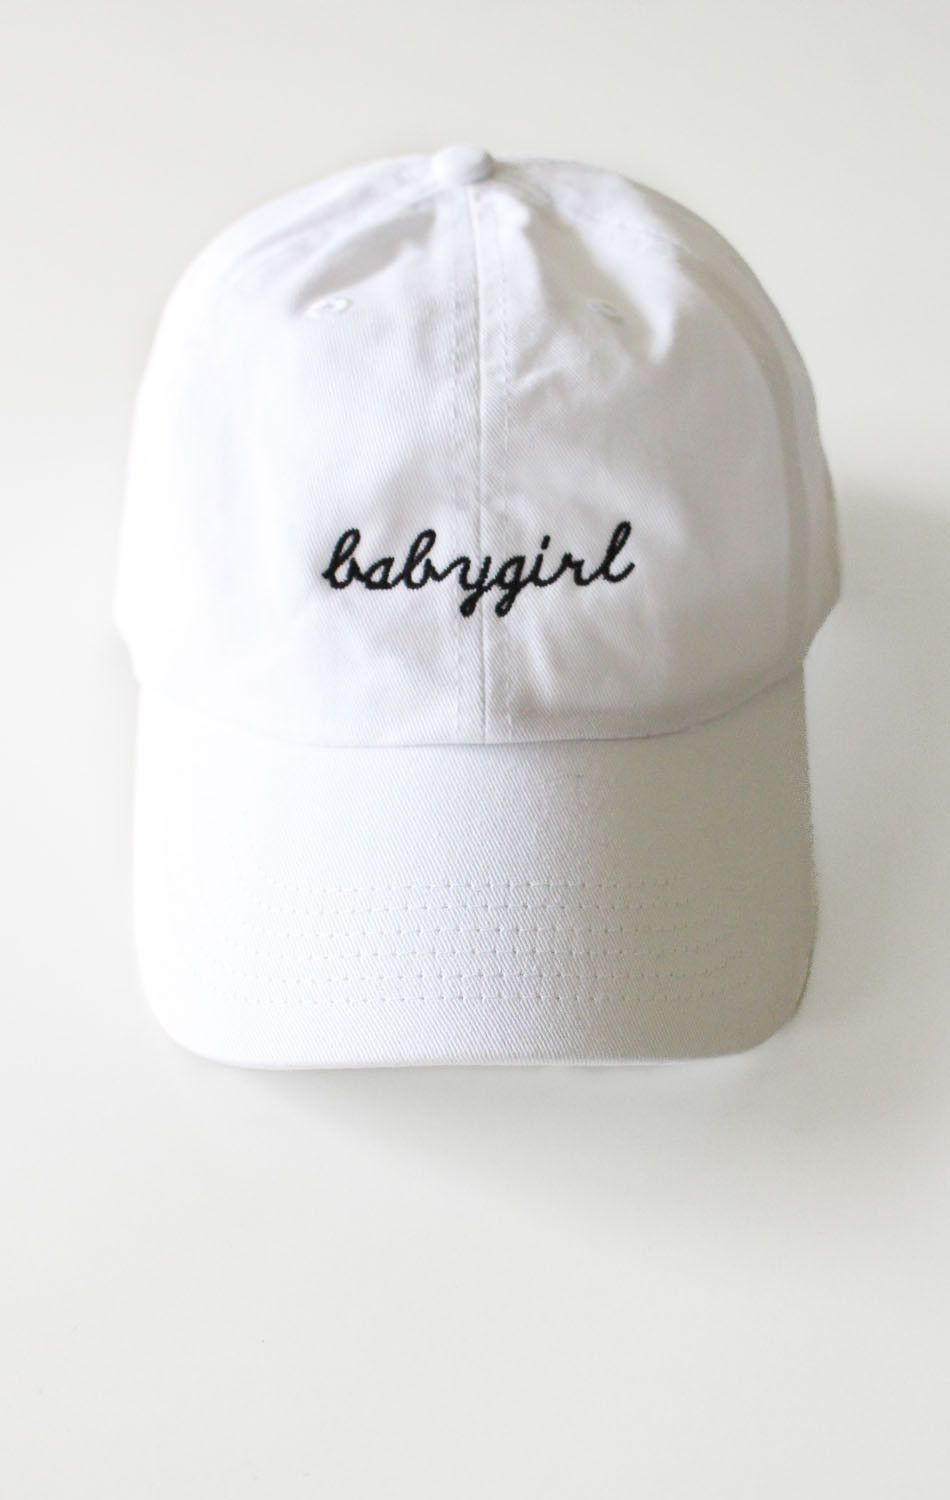 4691ba2a Description Details: White six panel cap with 'babygirl' embroidery &  adjustable back with tri-glide buckle. Brand: NYCT Clothing. 100% Chino  Twill.